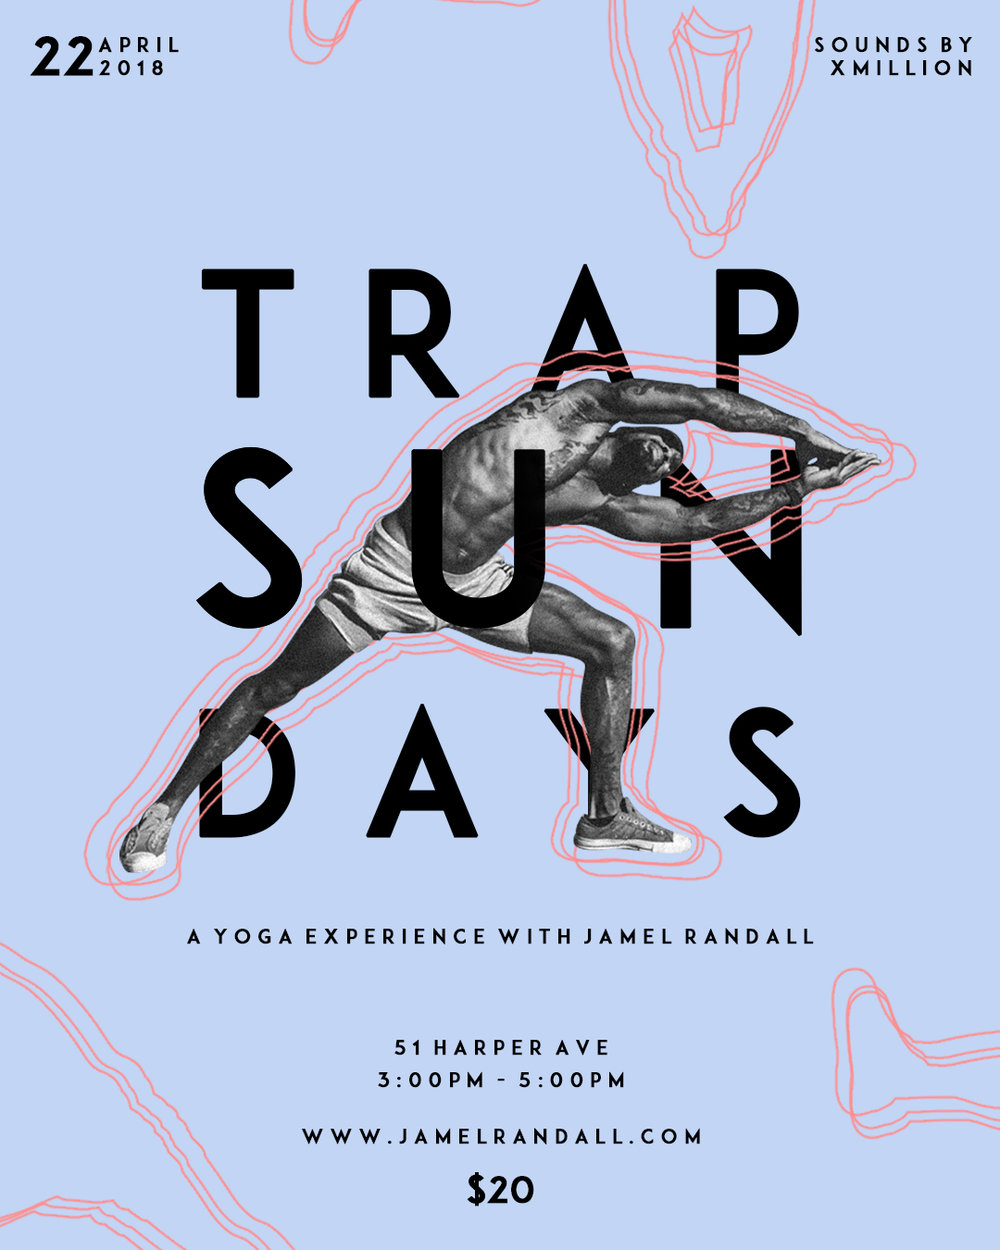 Jamel Randall The Trap Studio Trap Sundays Detroit